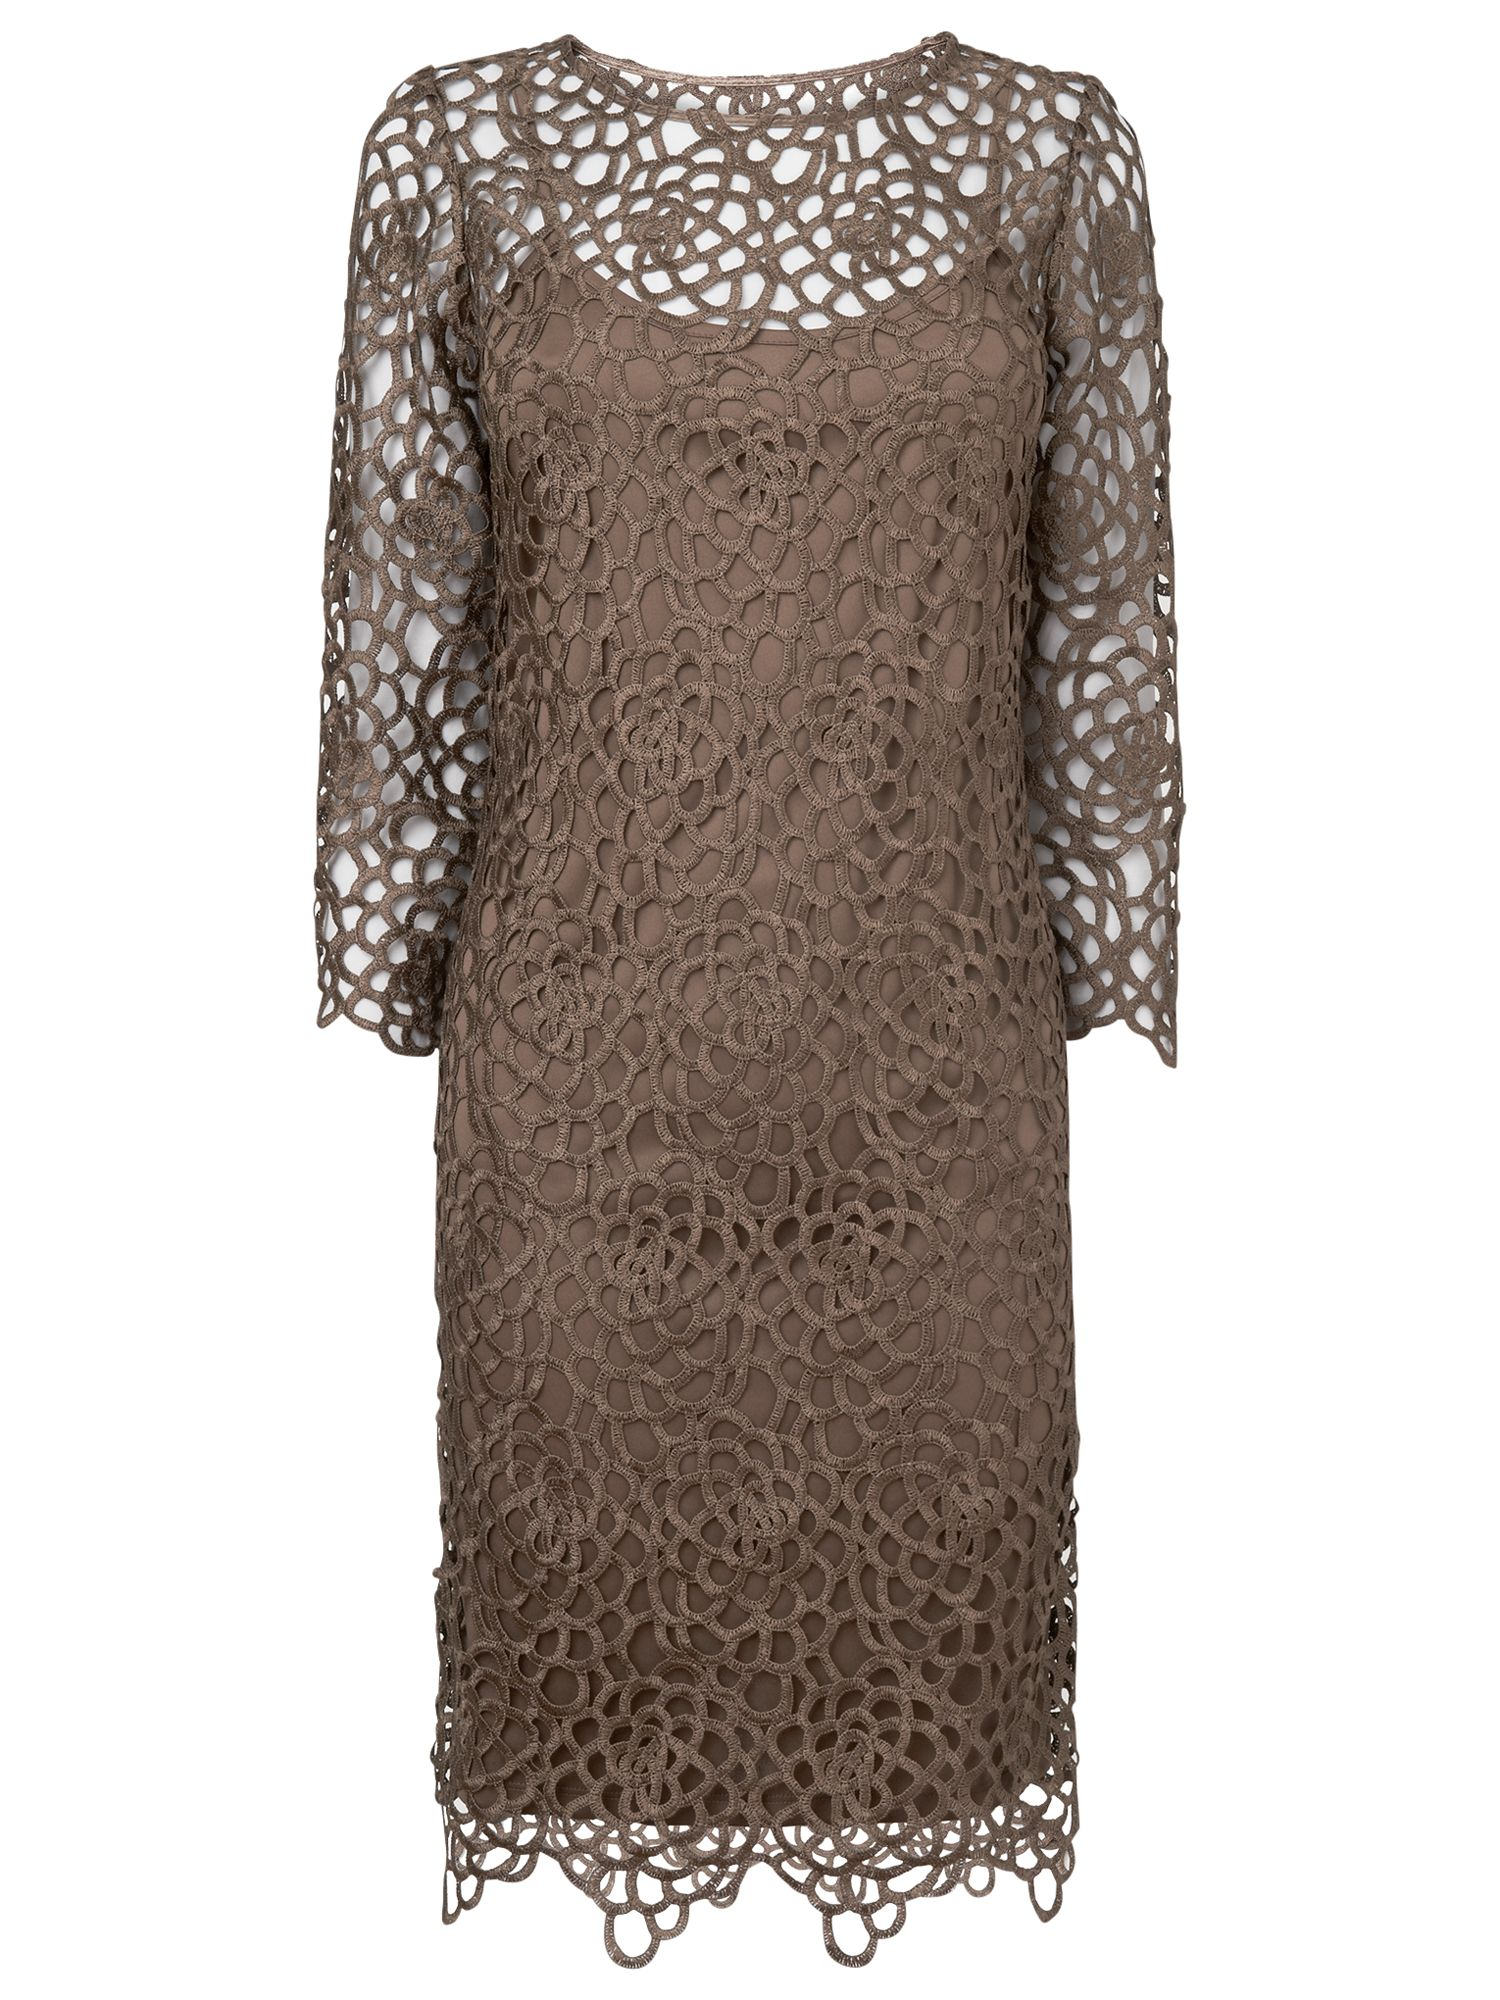 phase eight suzani dress gold, phase, eight, suzani, dress, gold, phase eight, clearance, womenswear offers, womens dresses offers, women, party outfits, lace dress, womens dresses, special offers, fashion magazine, brands l-z, inactive womenswear, 1741598